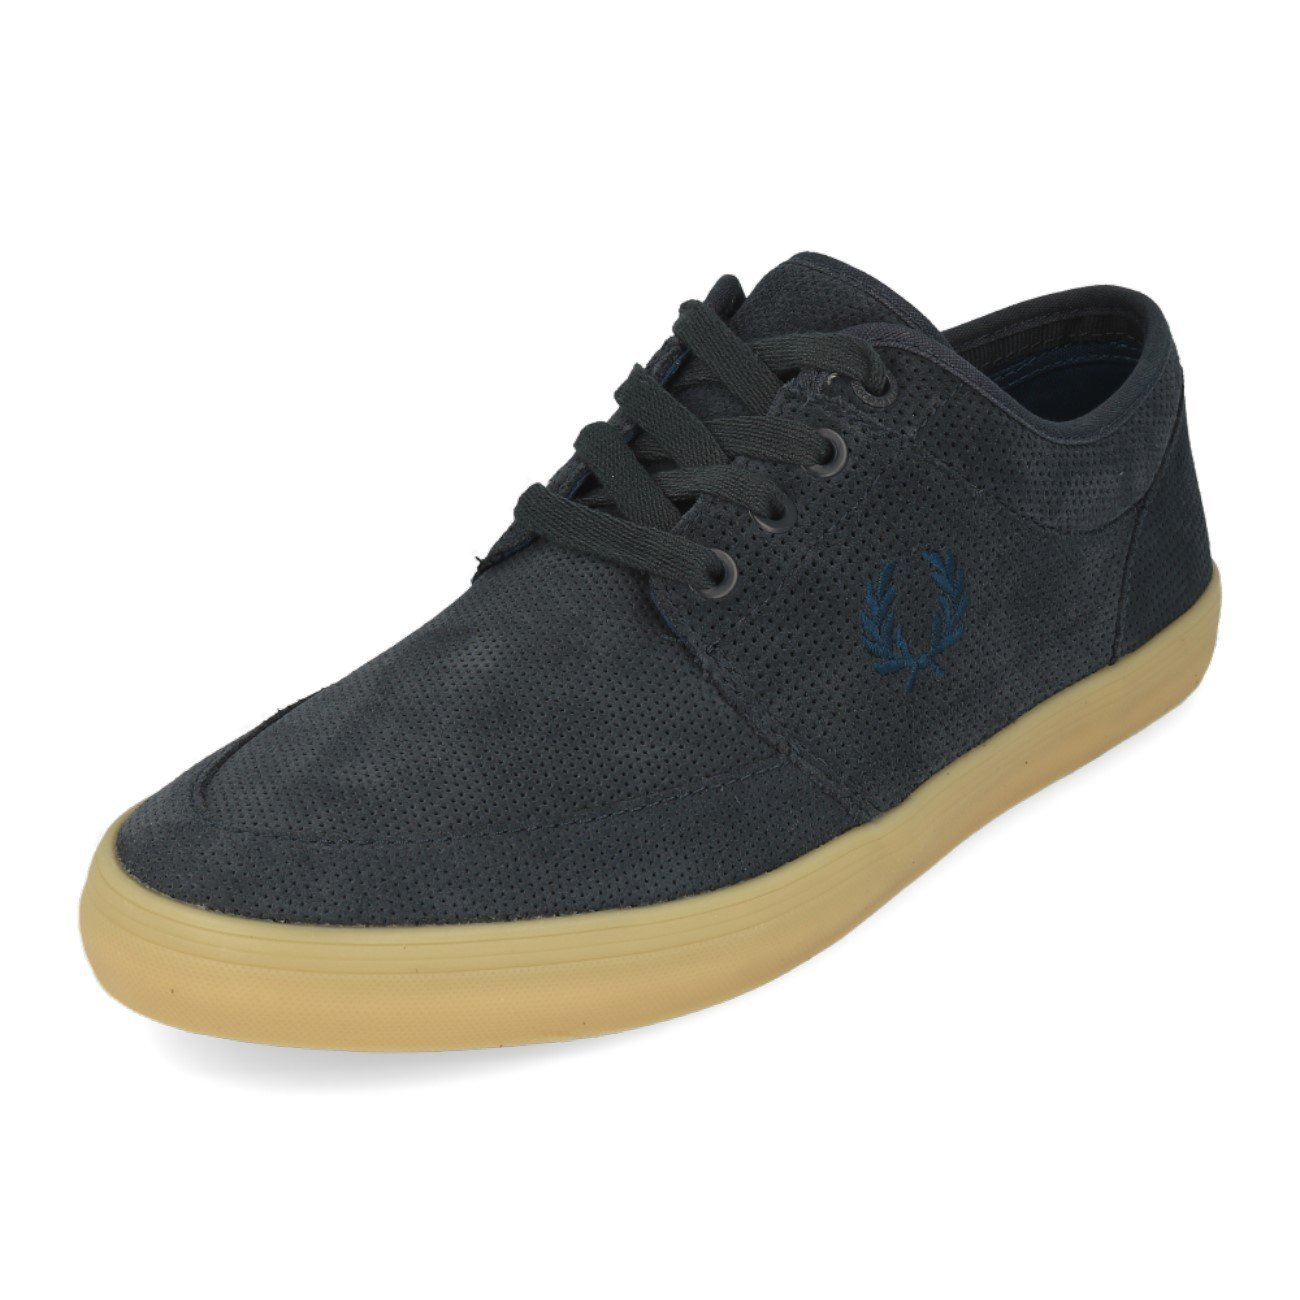 Frot Perry Stratford Perf Suede Graphite